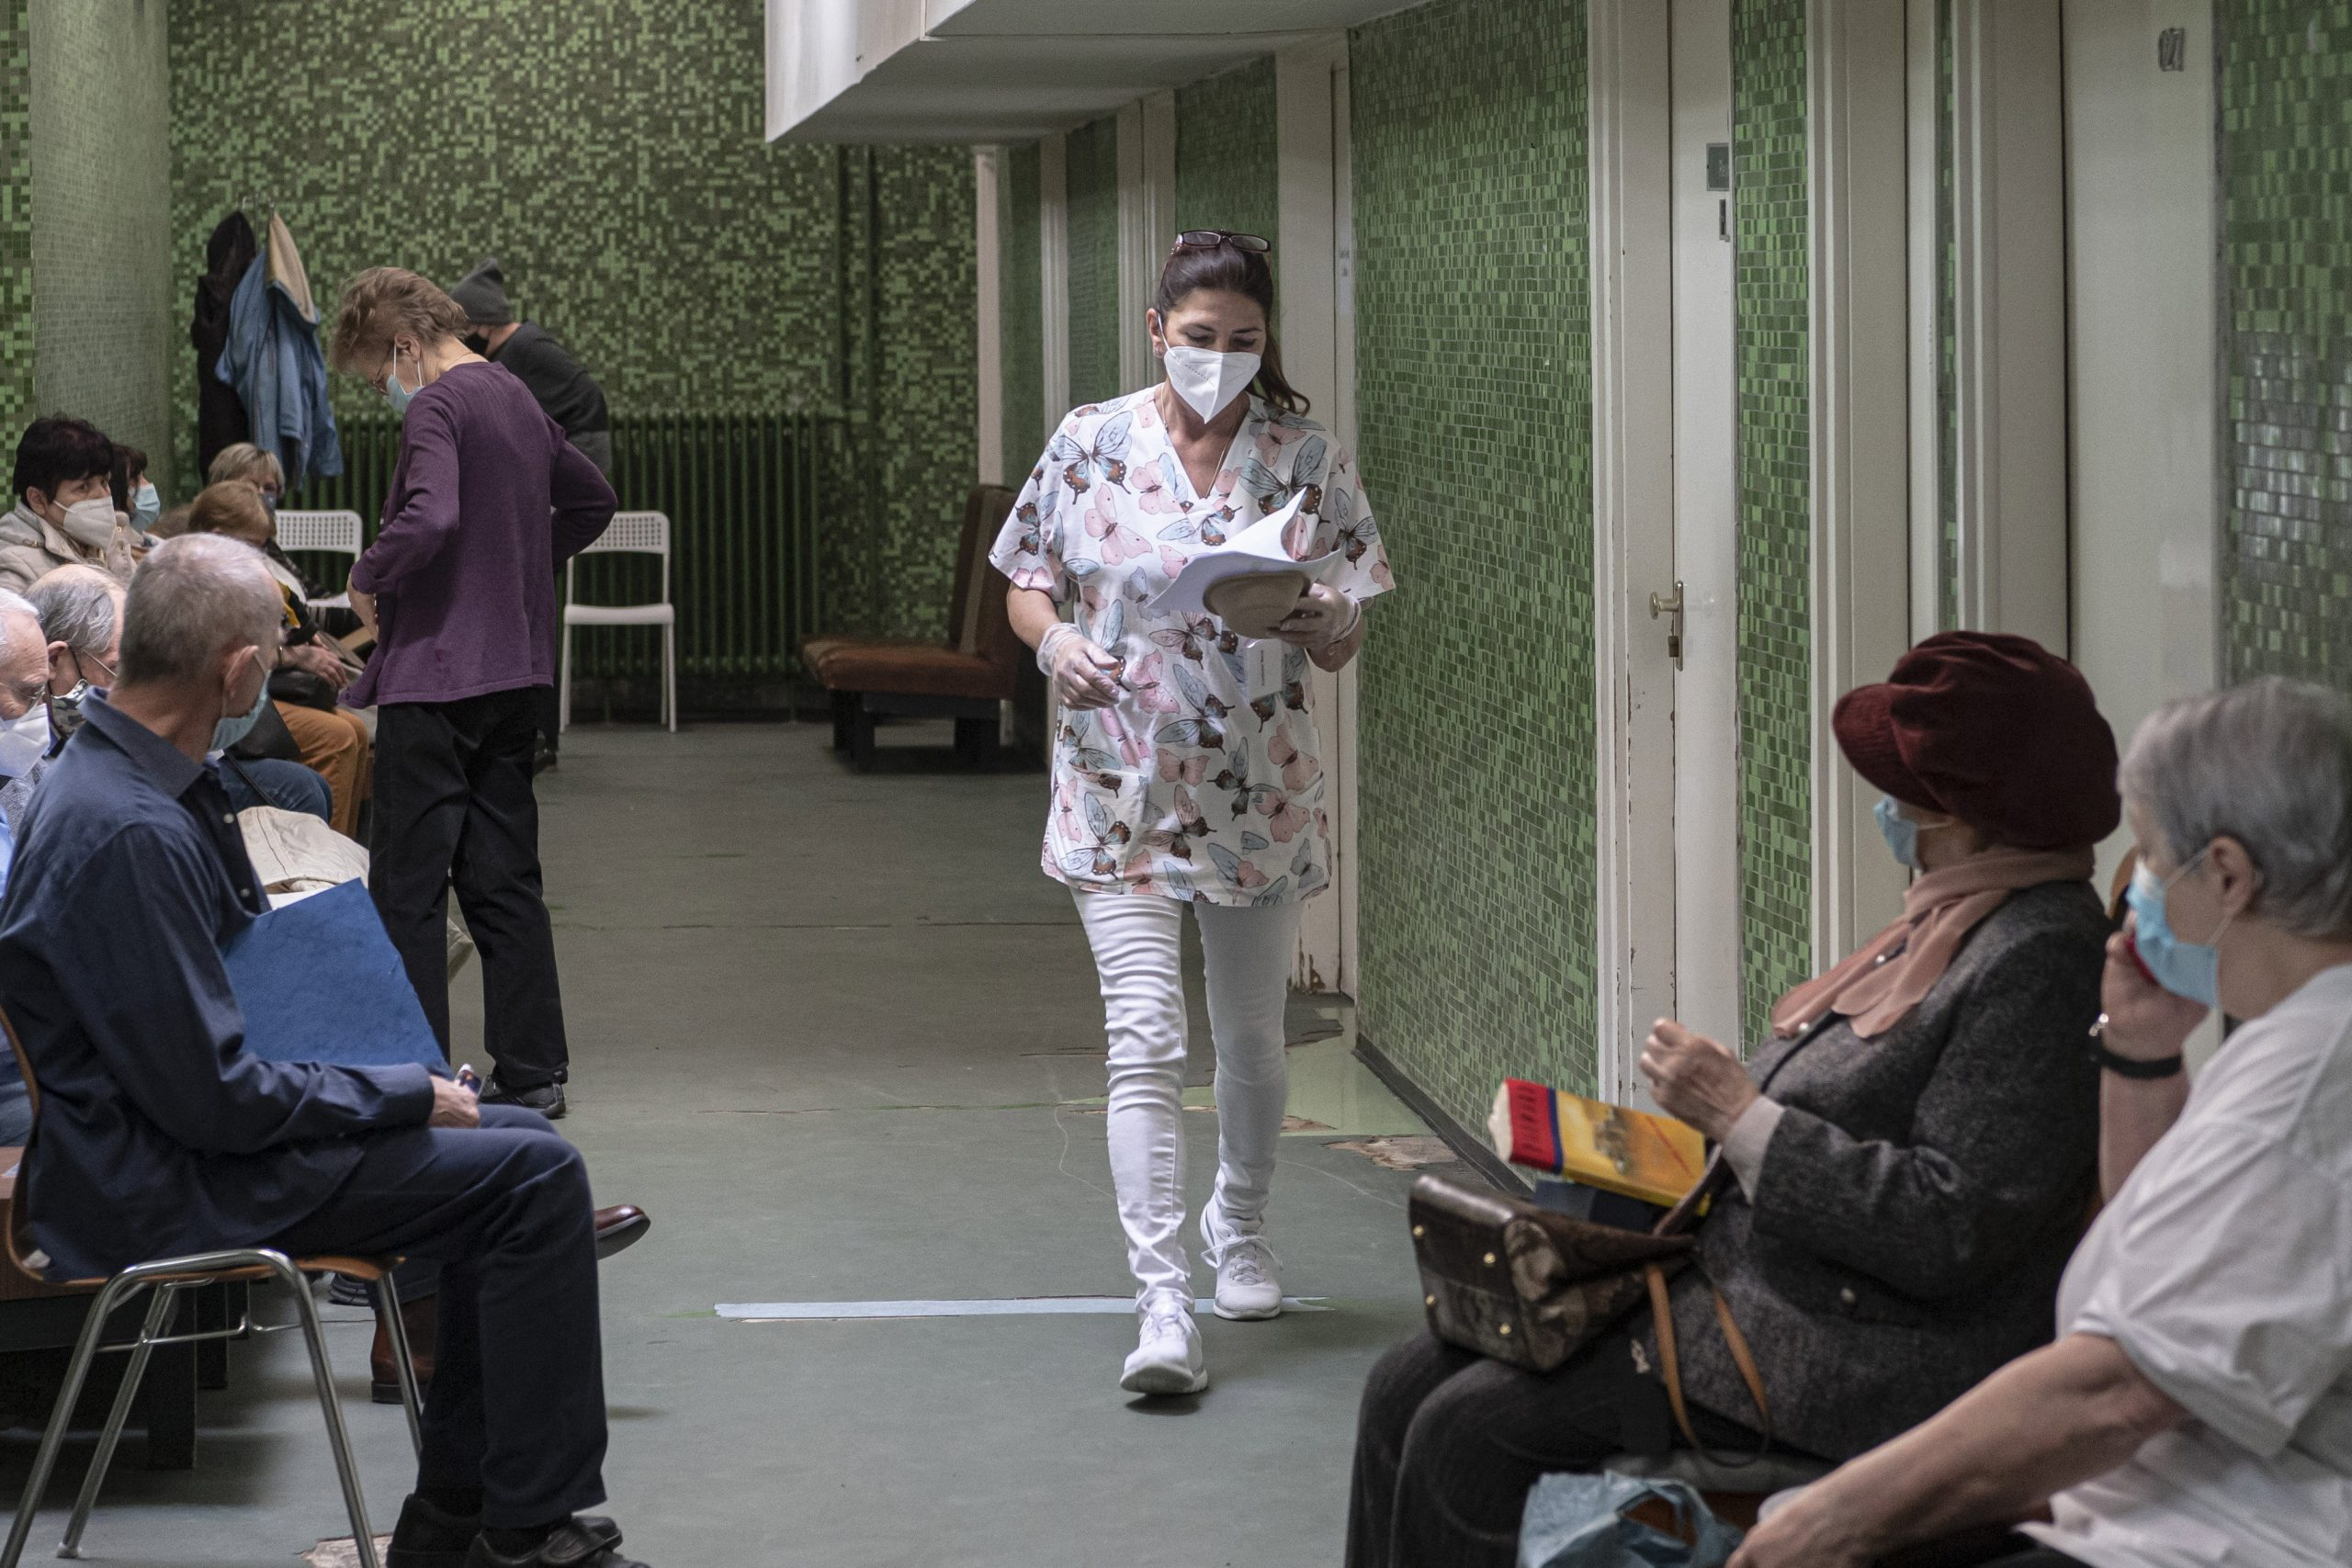 Tens of Thousands Await Surgeries in Hungary Before Start of 4th Covid Wave